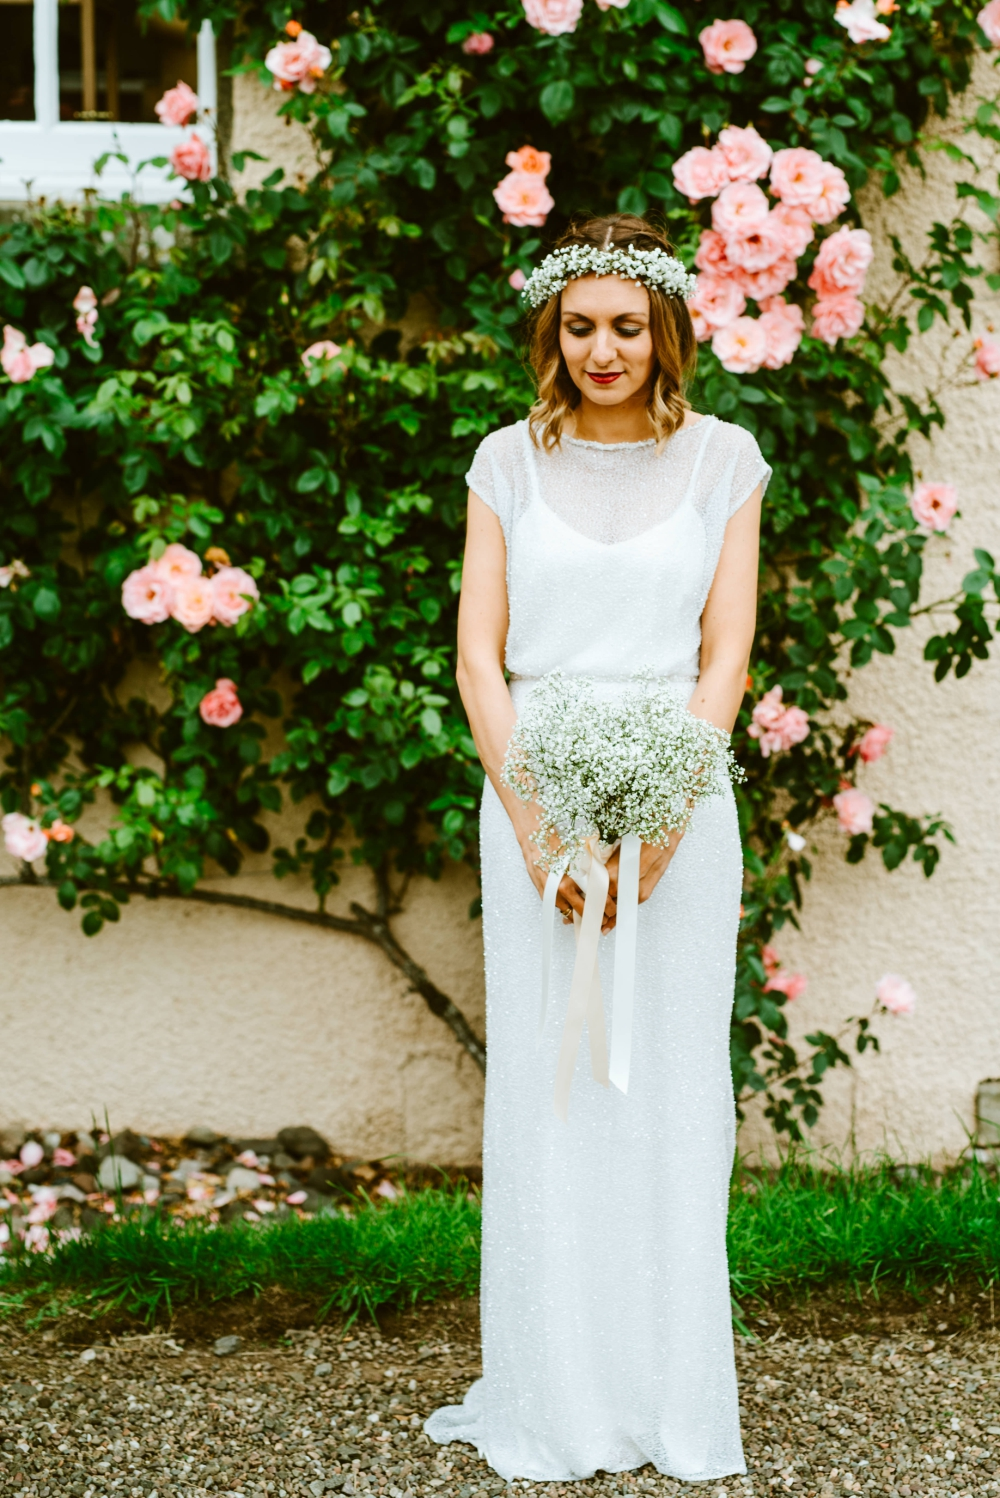 Flossy and Dossy Wedding Dress For A Fun and Quirky Wedding